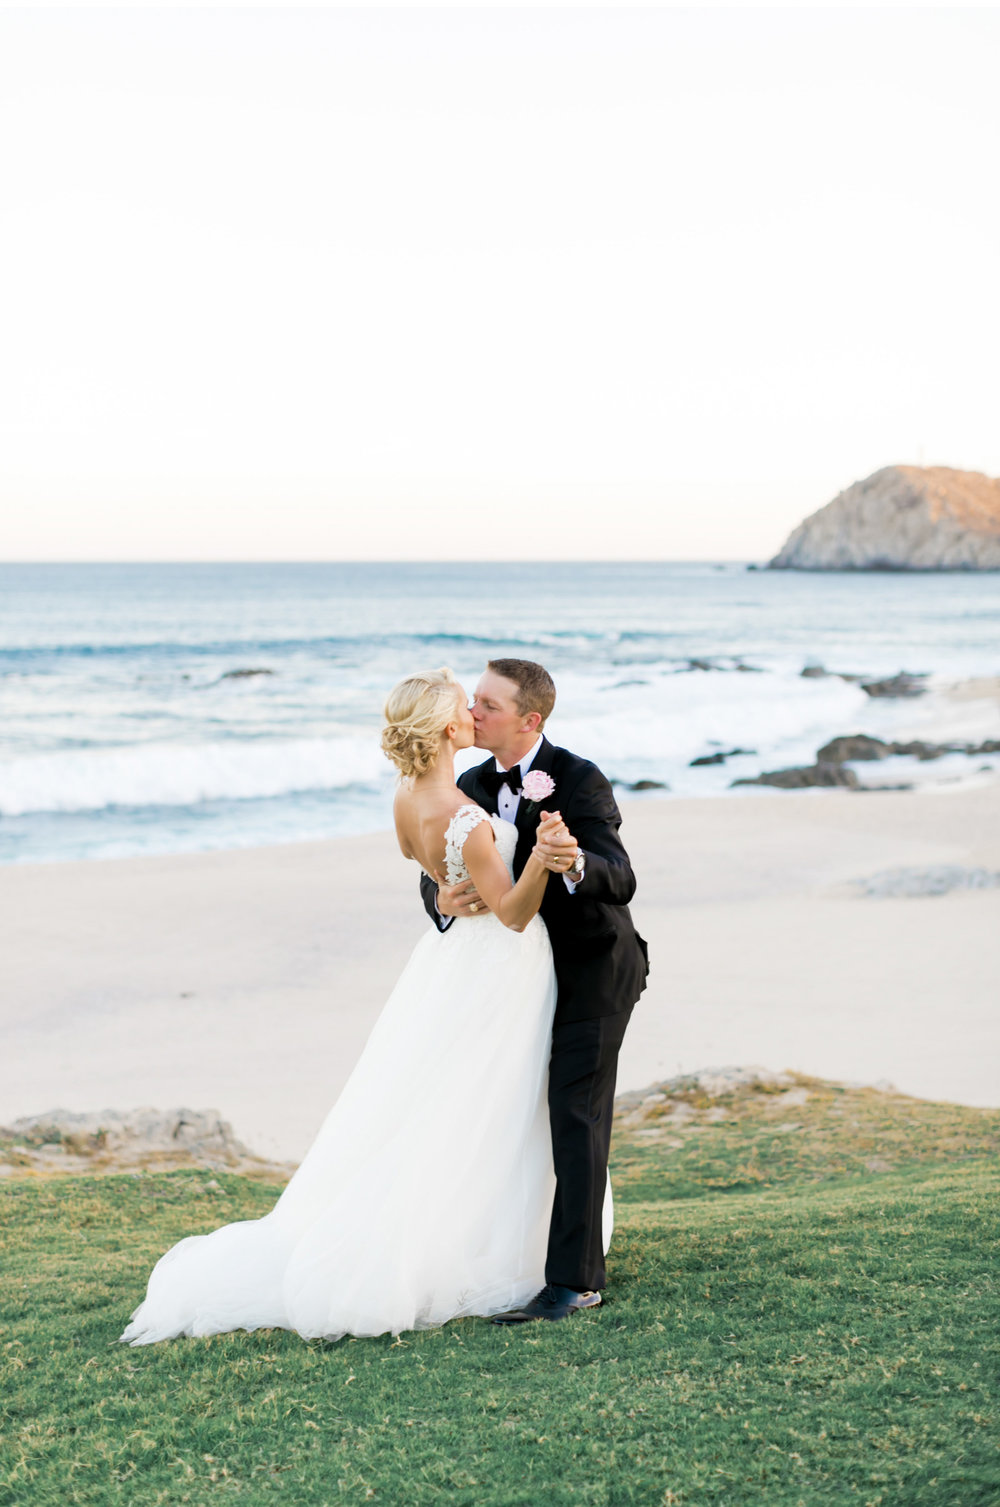 Hawaii-Destination-Wedding-Natalie-Schutt-Photography-Style-Me-Pretty_09.jpg